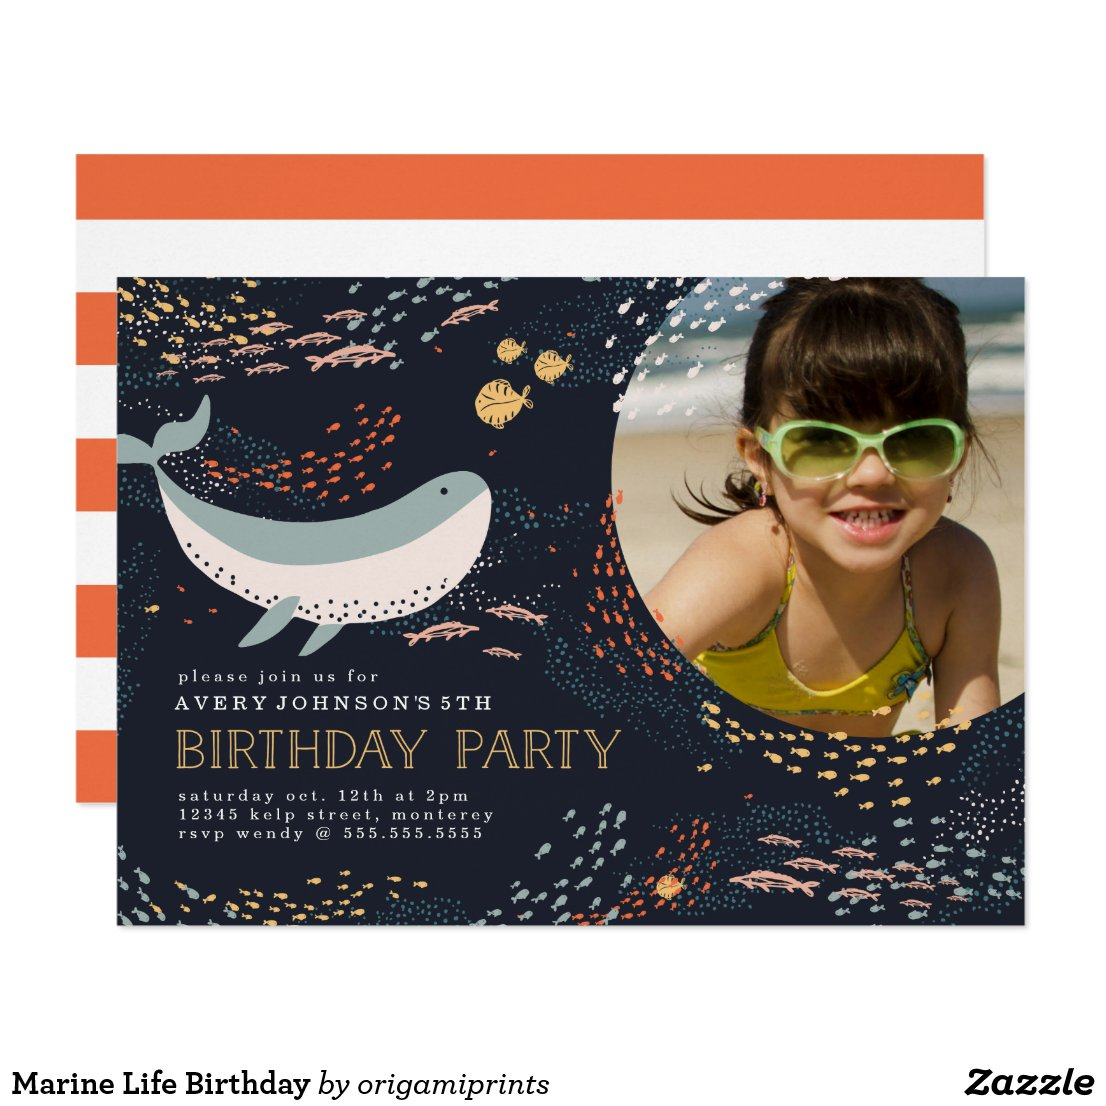 Marine Life Birthday Card